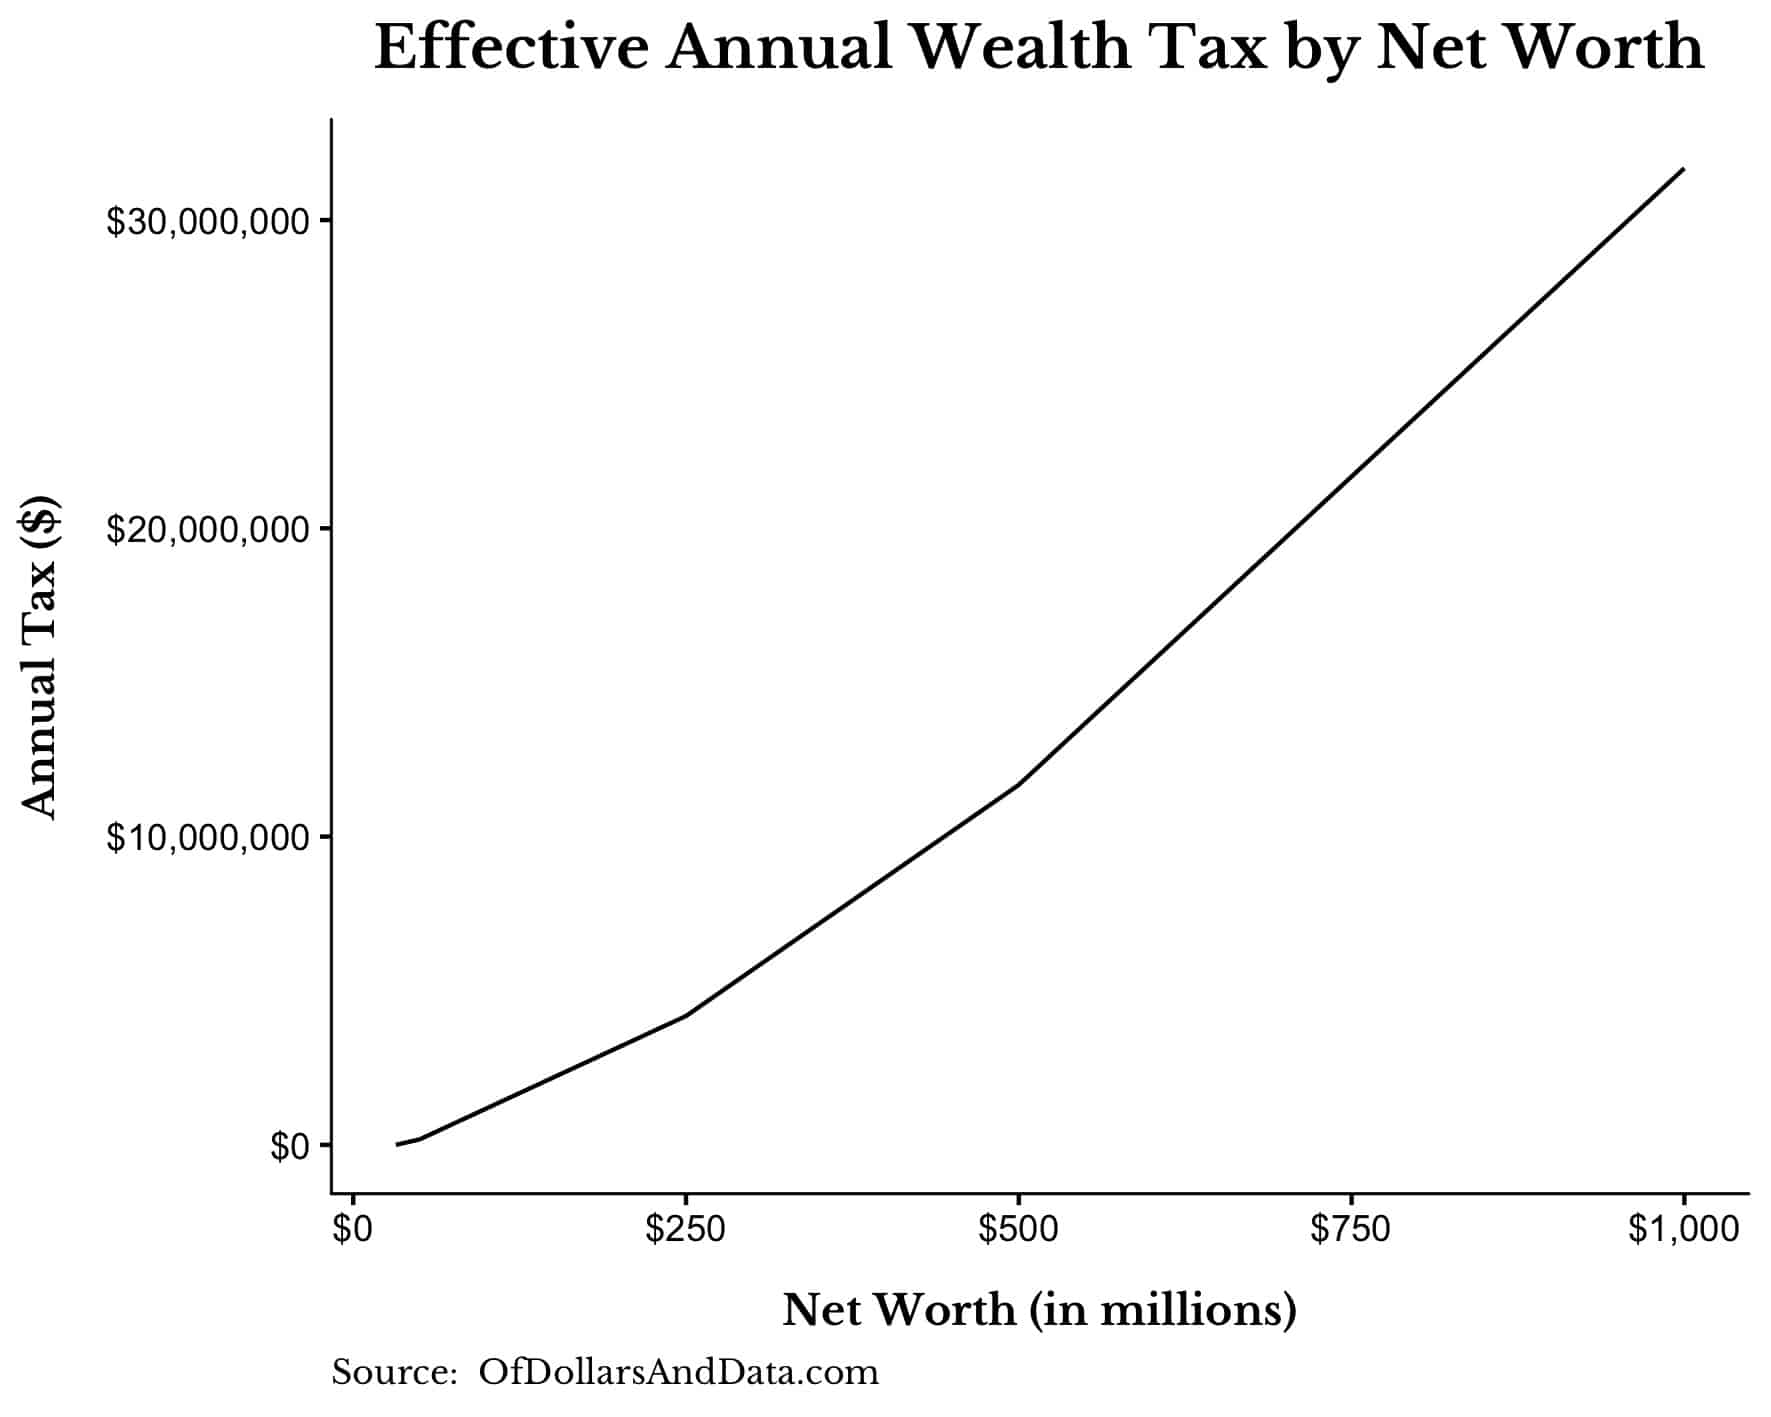 sanders effective annual wealth tax by net worth up to 1 billion